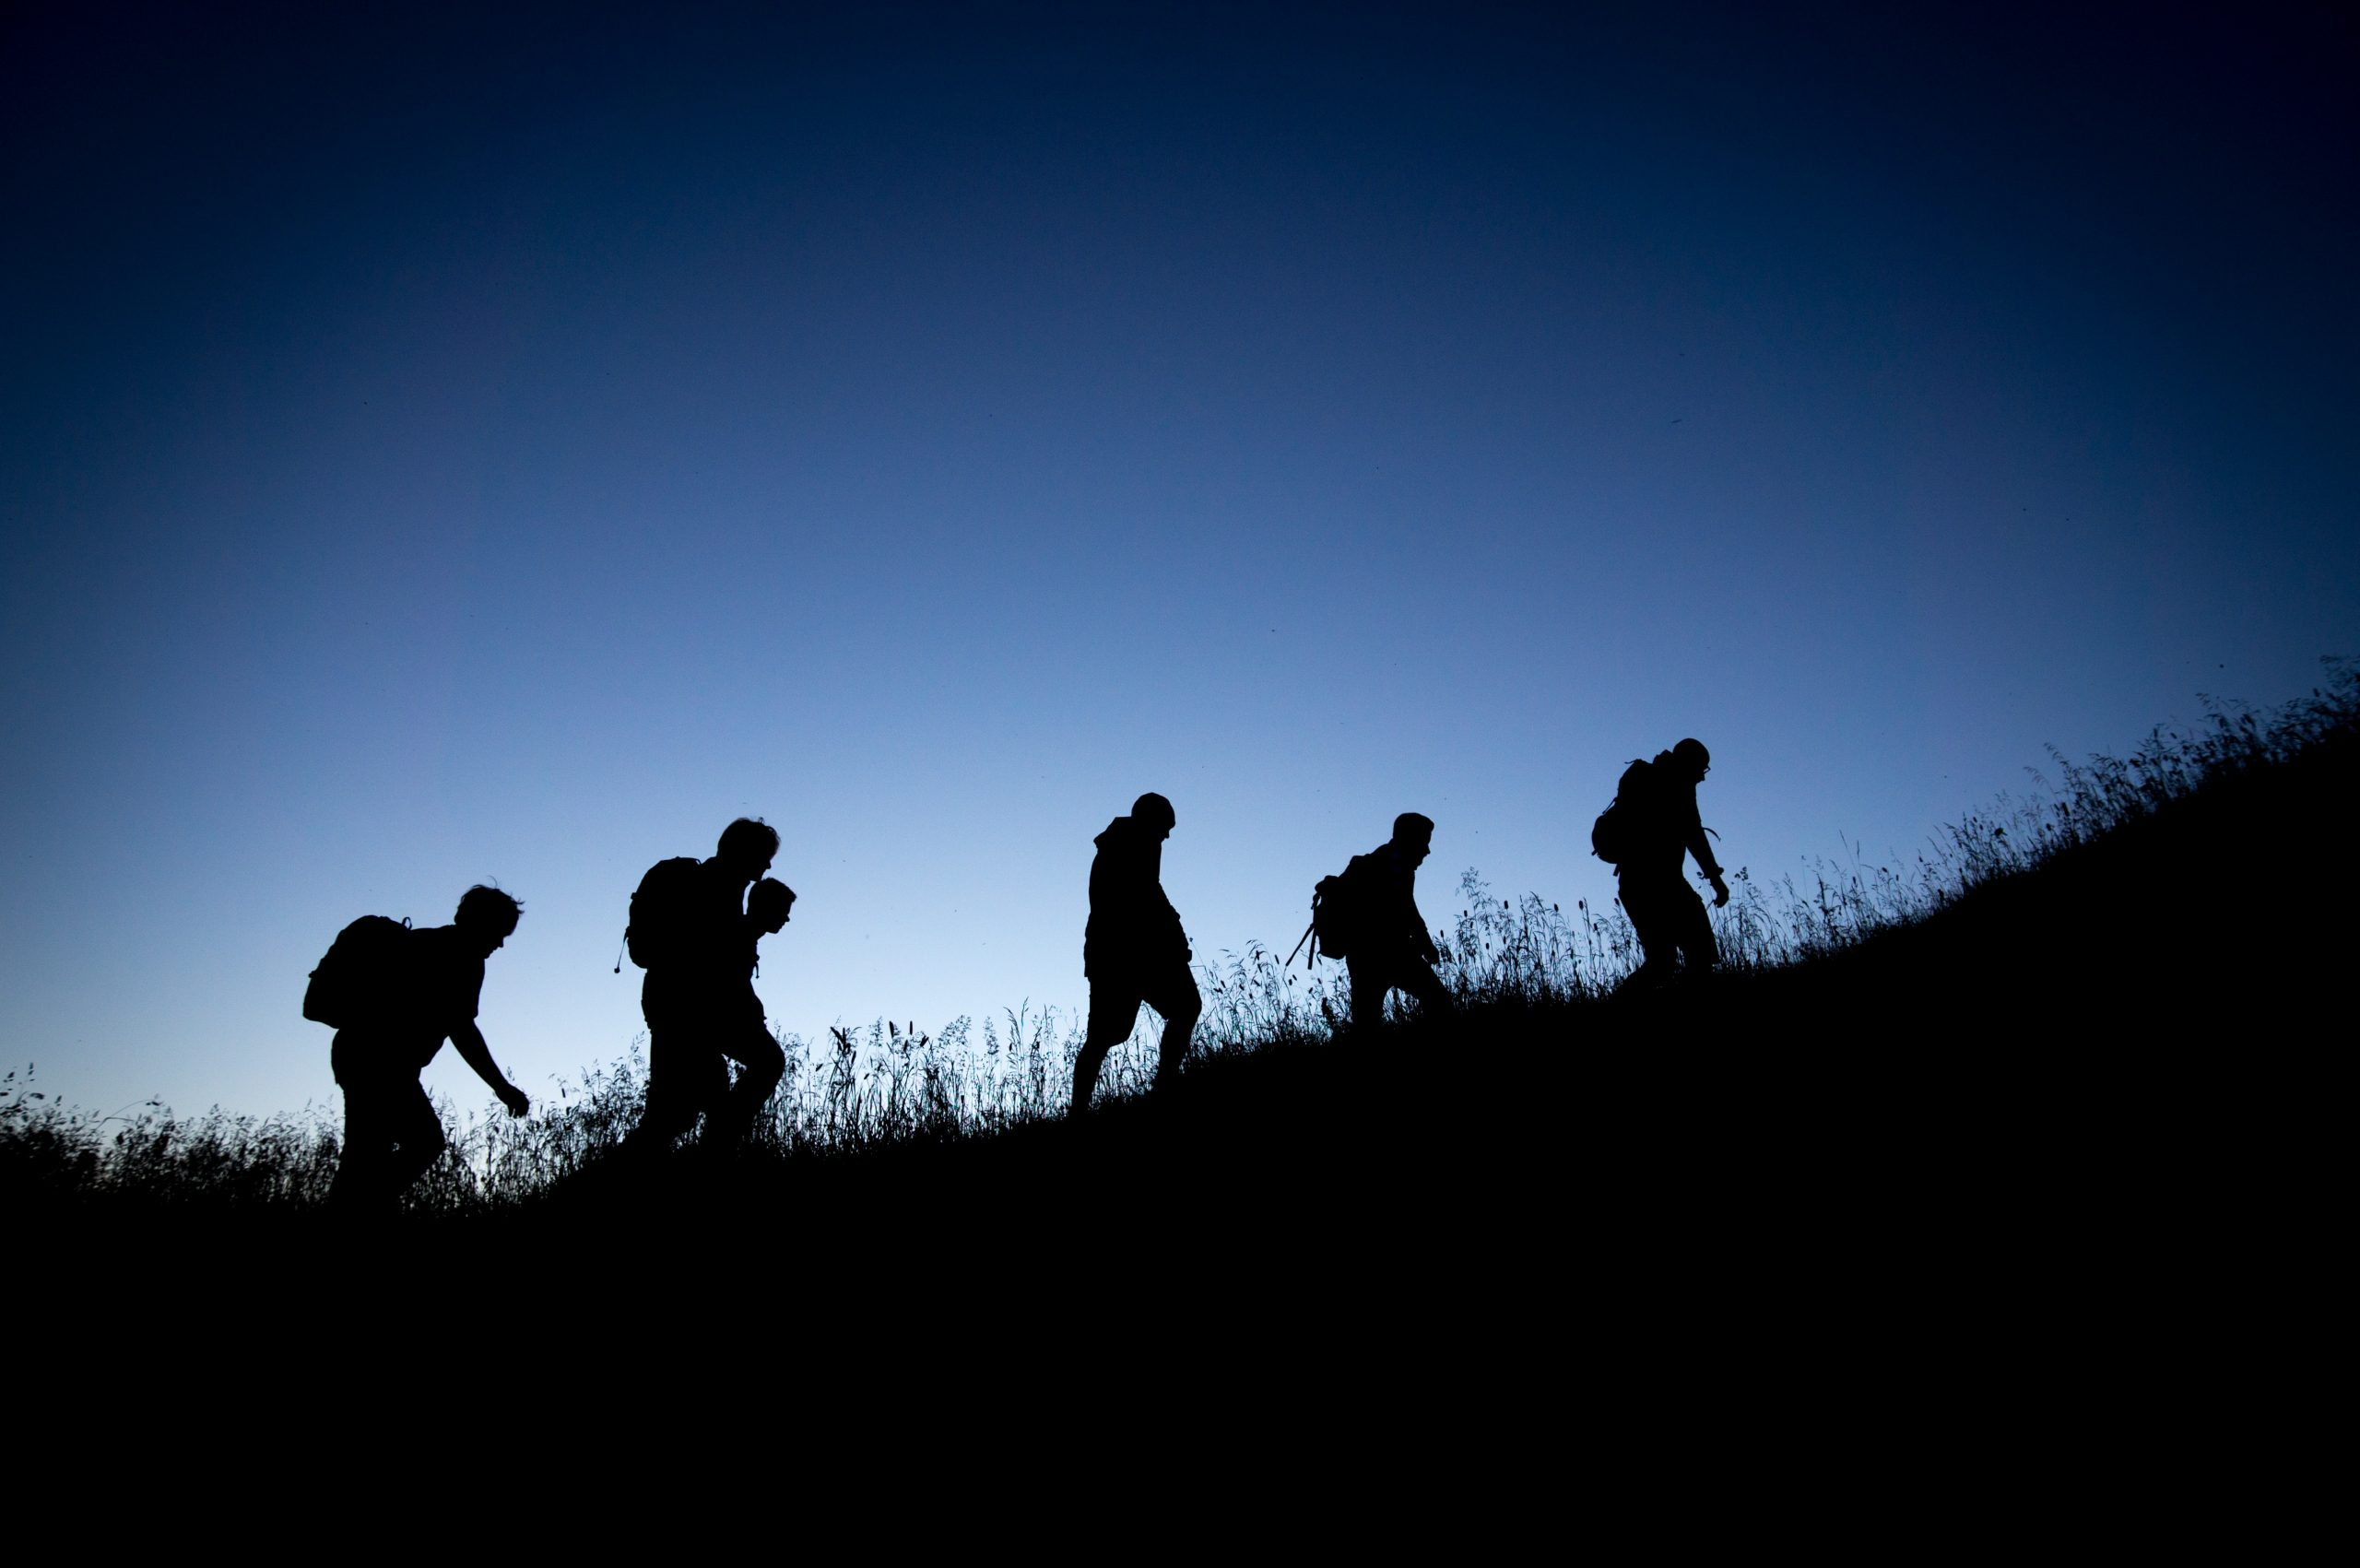 silhouette of people hiking at night